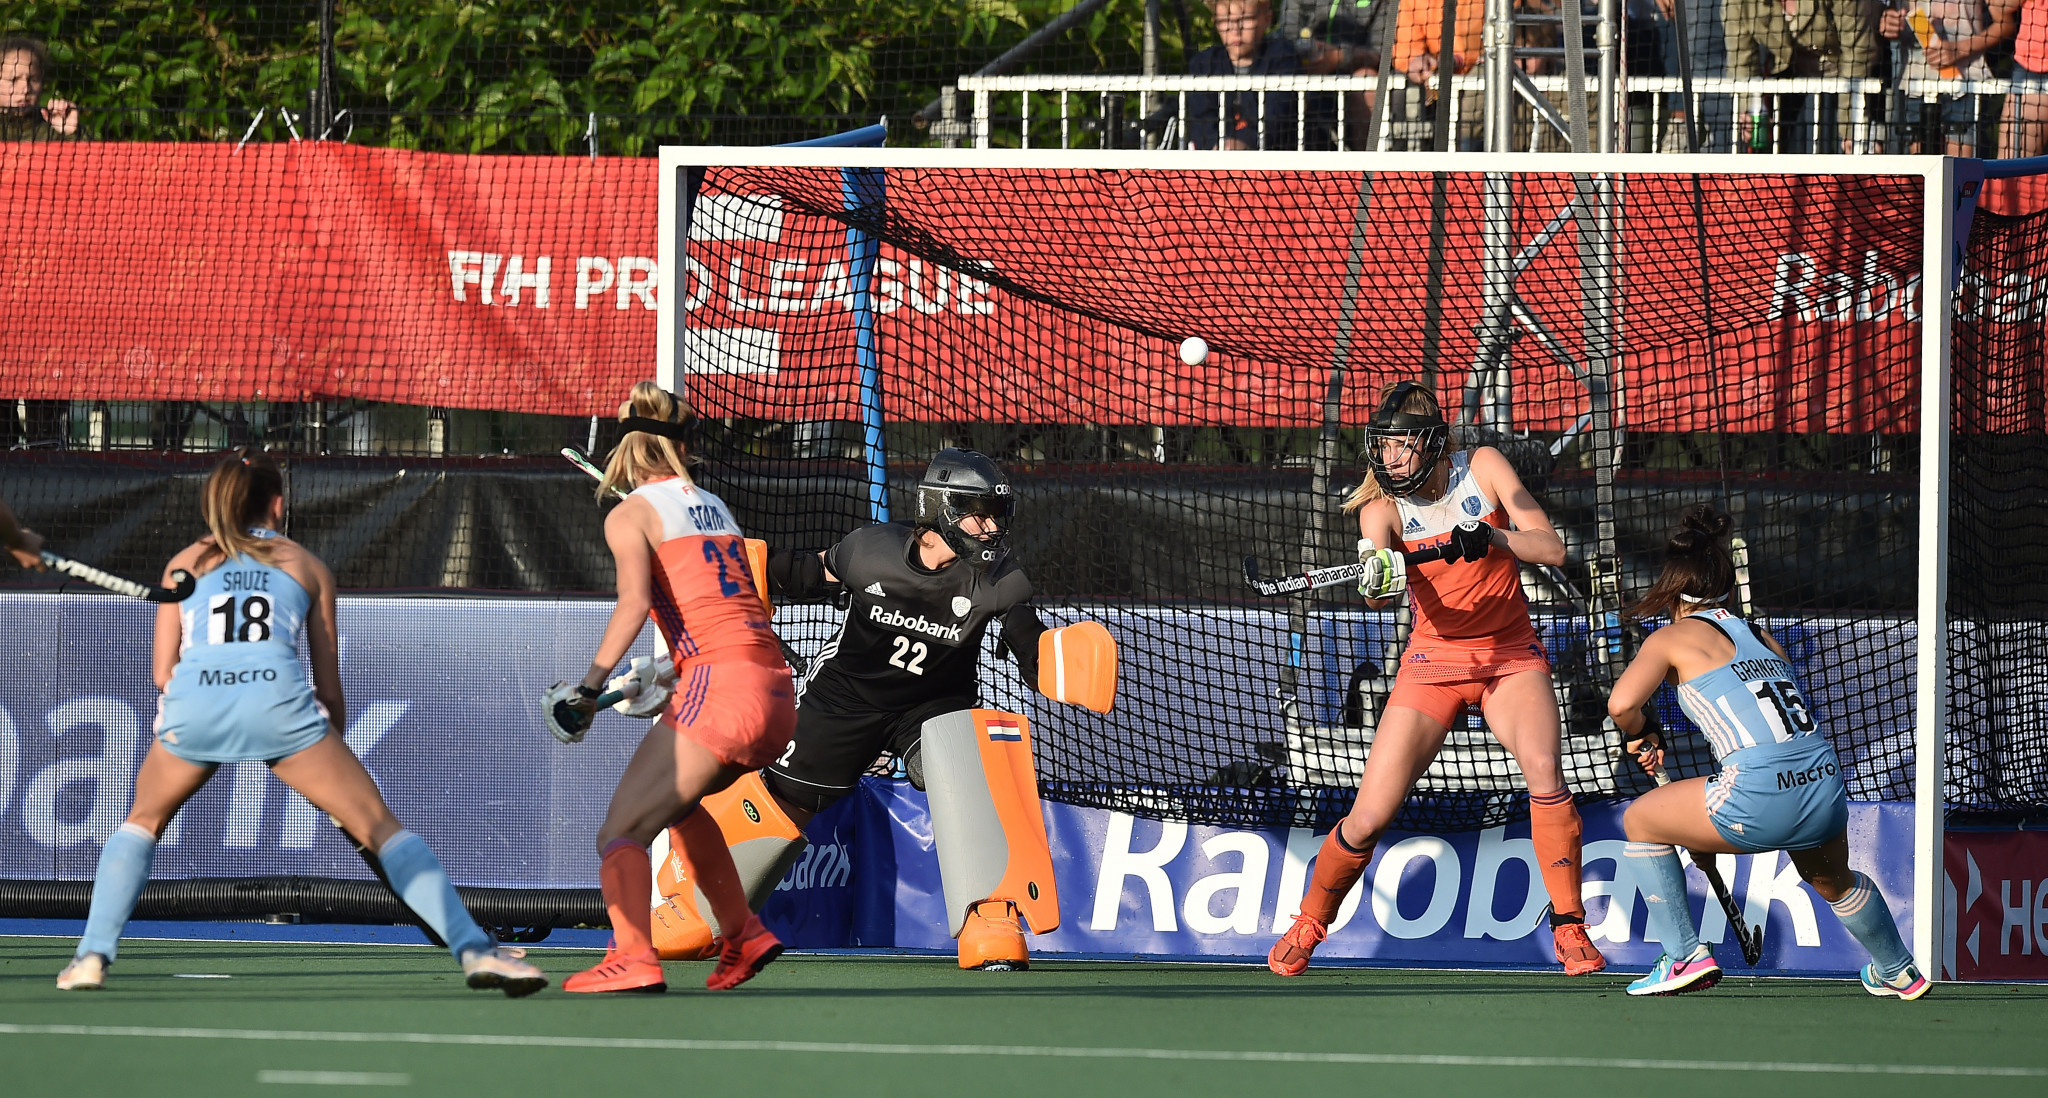 Netherlands clinch top spot in women's FIH Pro League with victory over Argentina